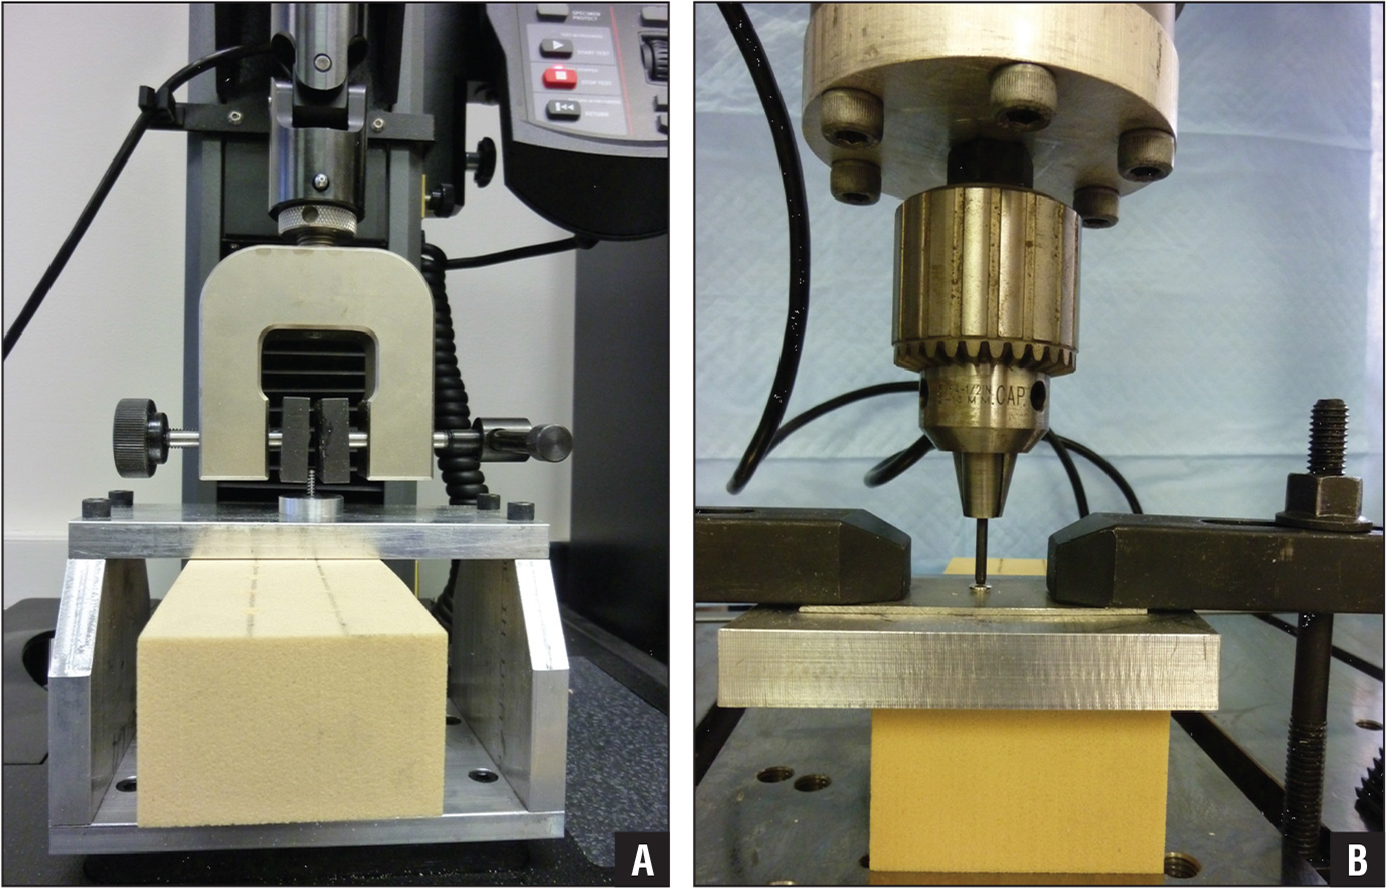 Experimental setups used for screw pullout (A) and insertion torque (B) tests.